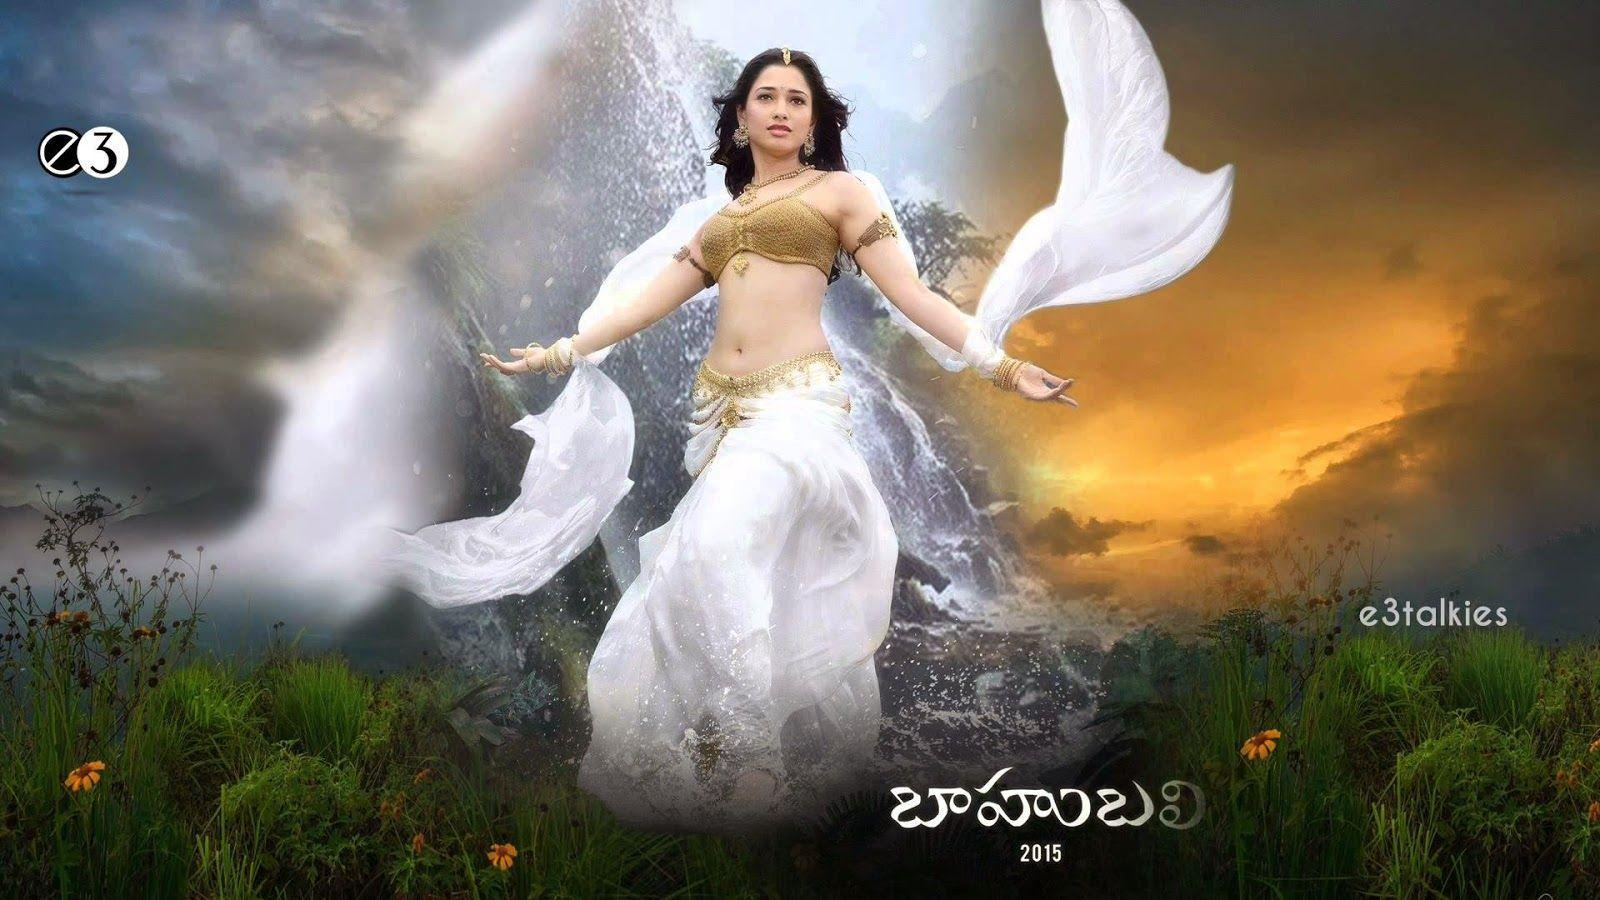 Wallpaper download bahubali - Bahubali 2 Wallpapers Tamanna Anushka Hd Images Photos